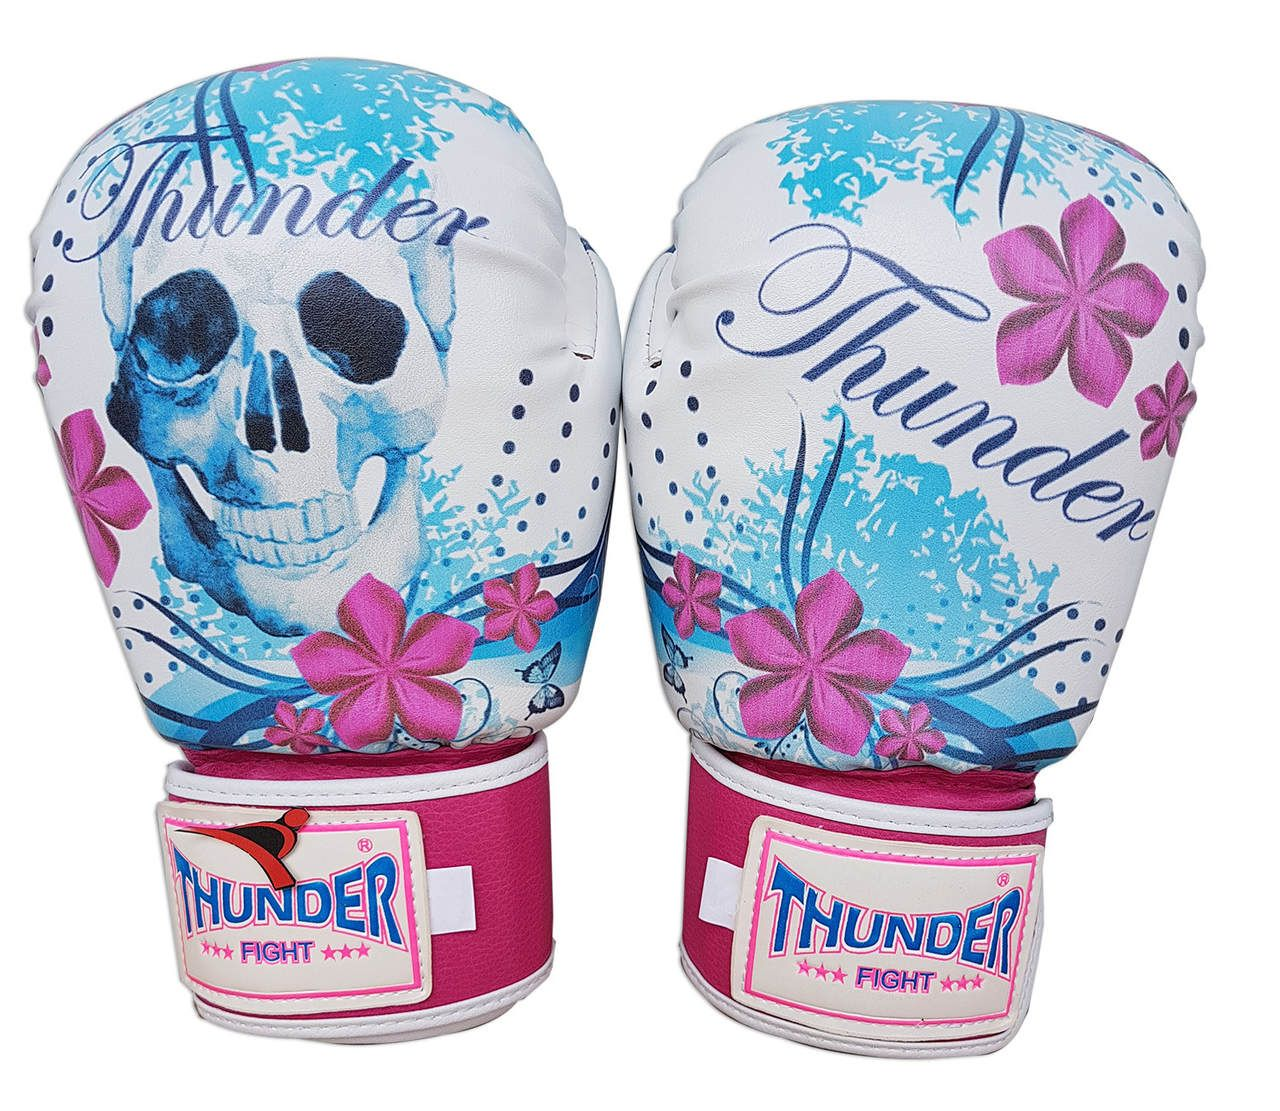 Kit de Boxe / Muay Thai Feminino 10oz - Caveira Azul com Rosa - Thunder Fight   - PRALUTA SHOP